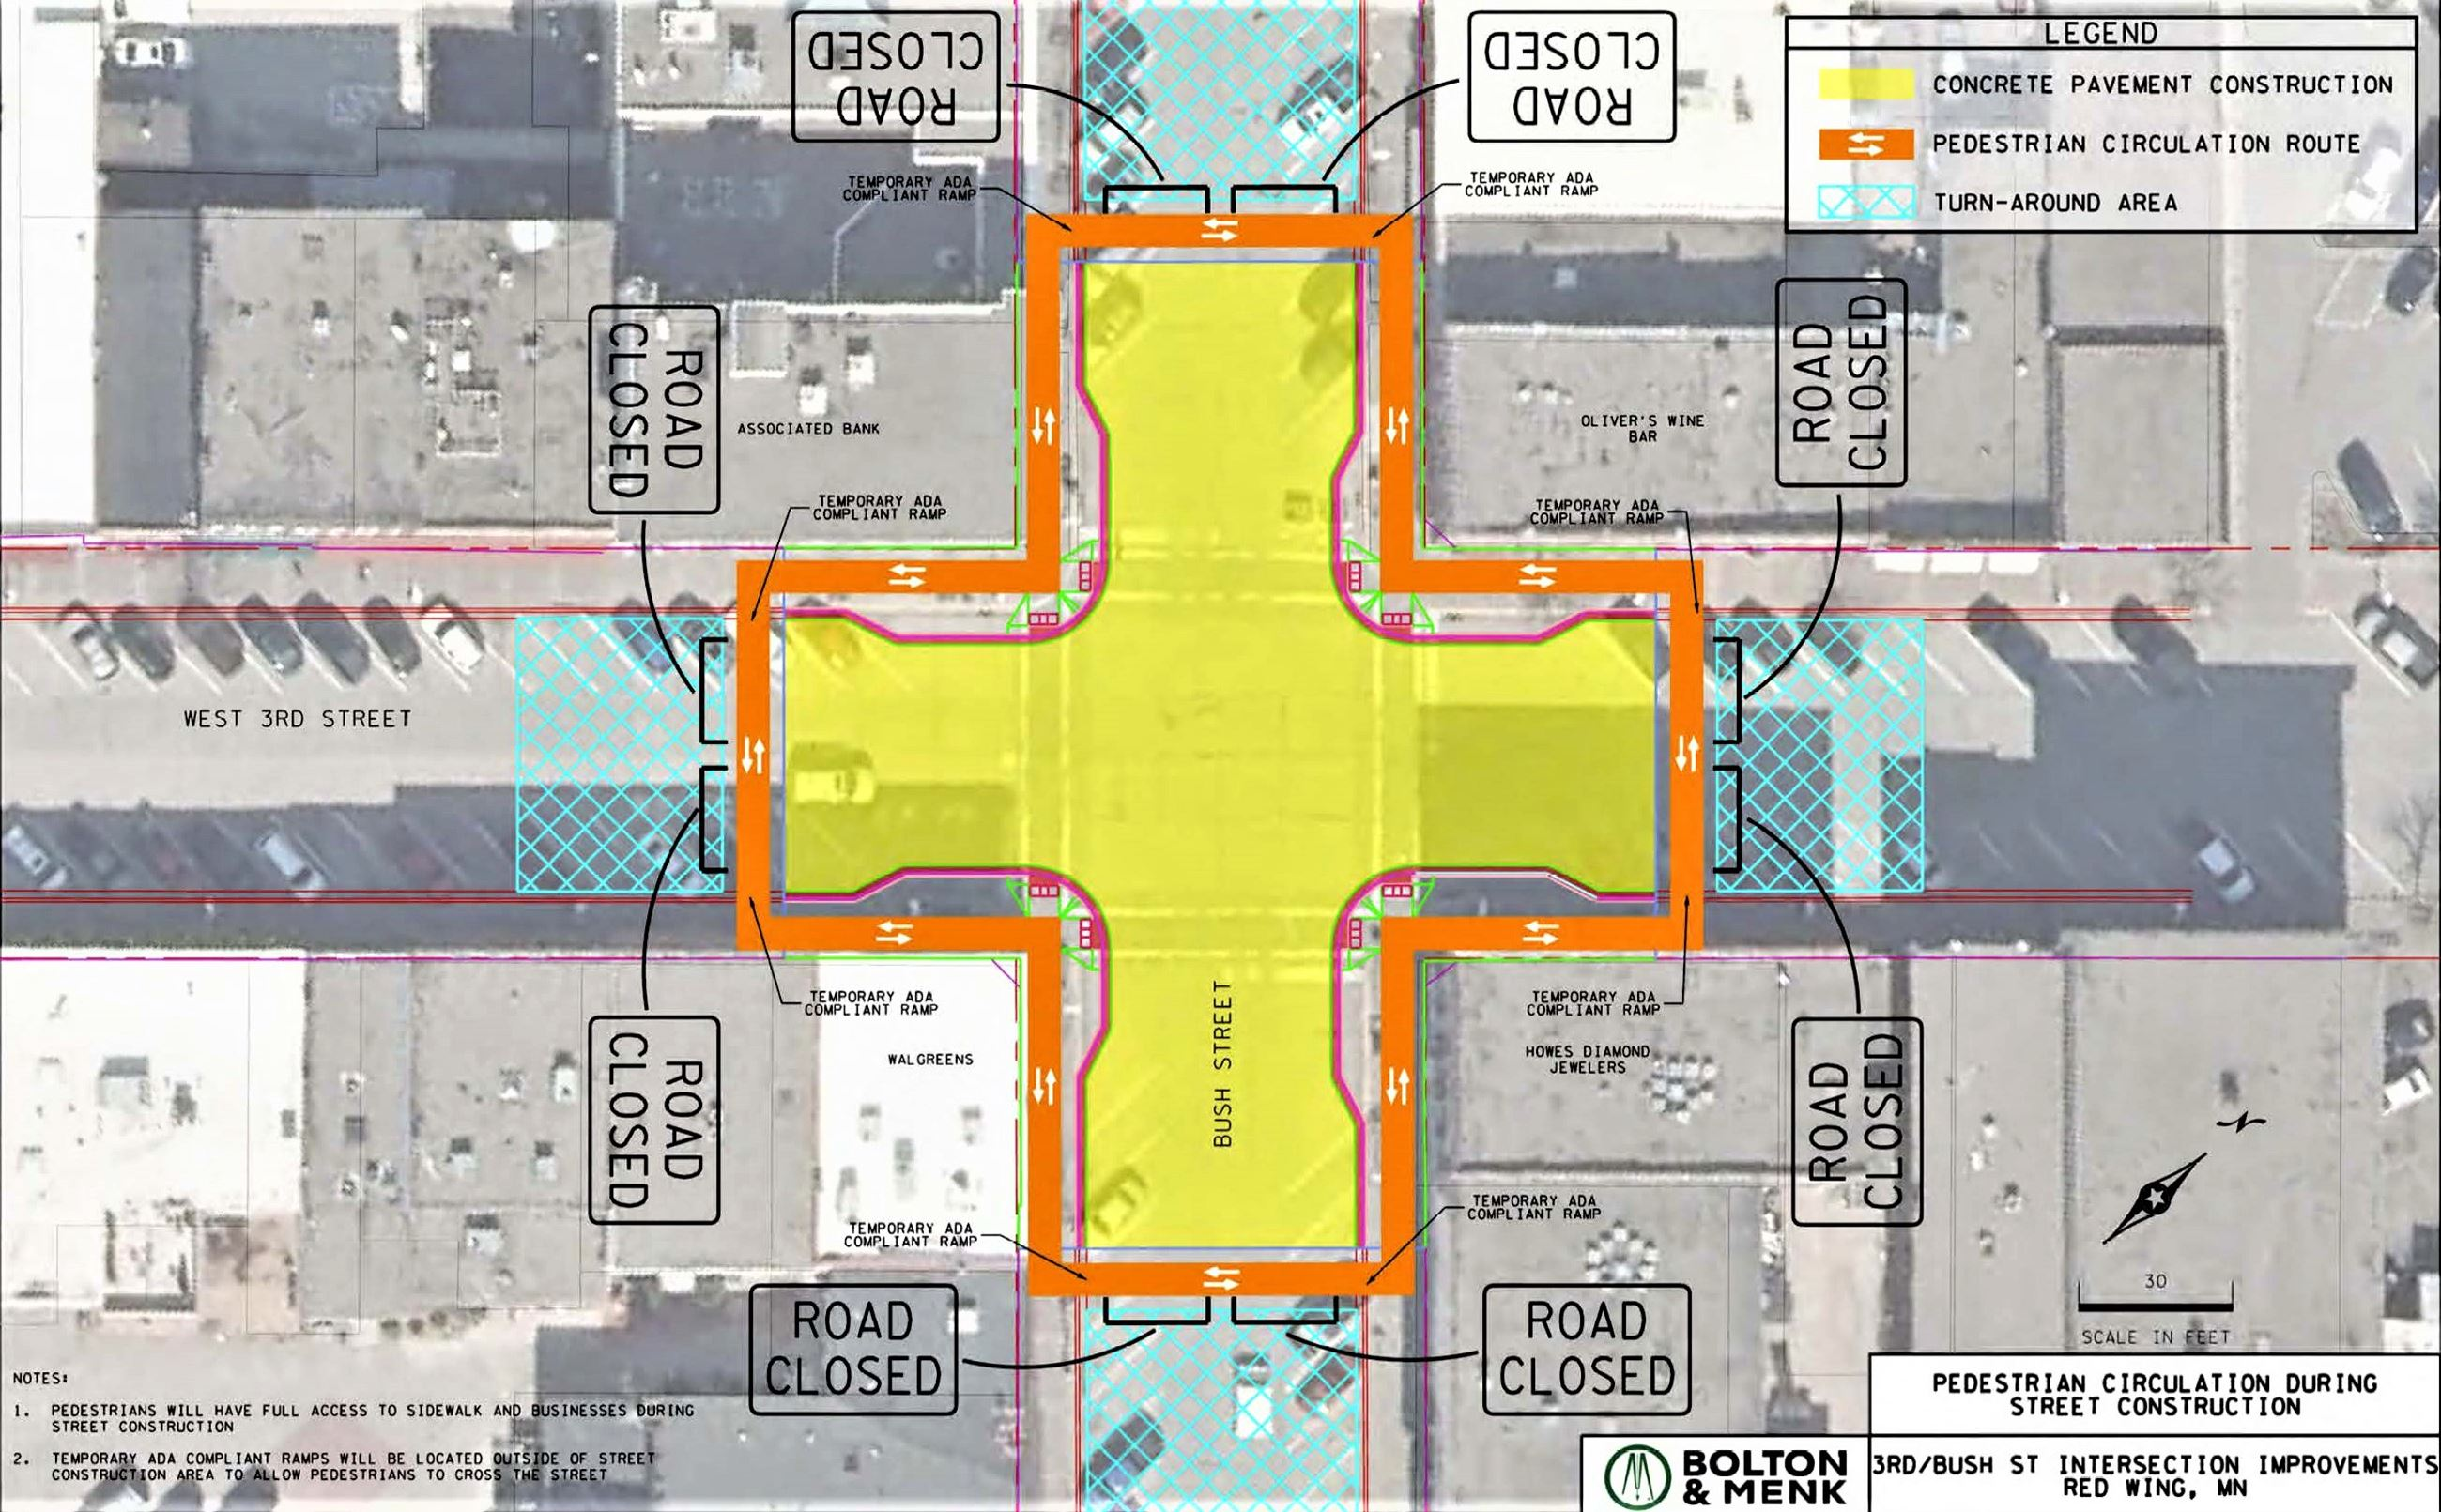 Pedestrian circulation during street construction map